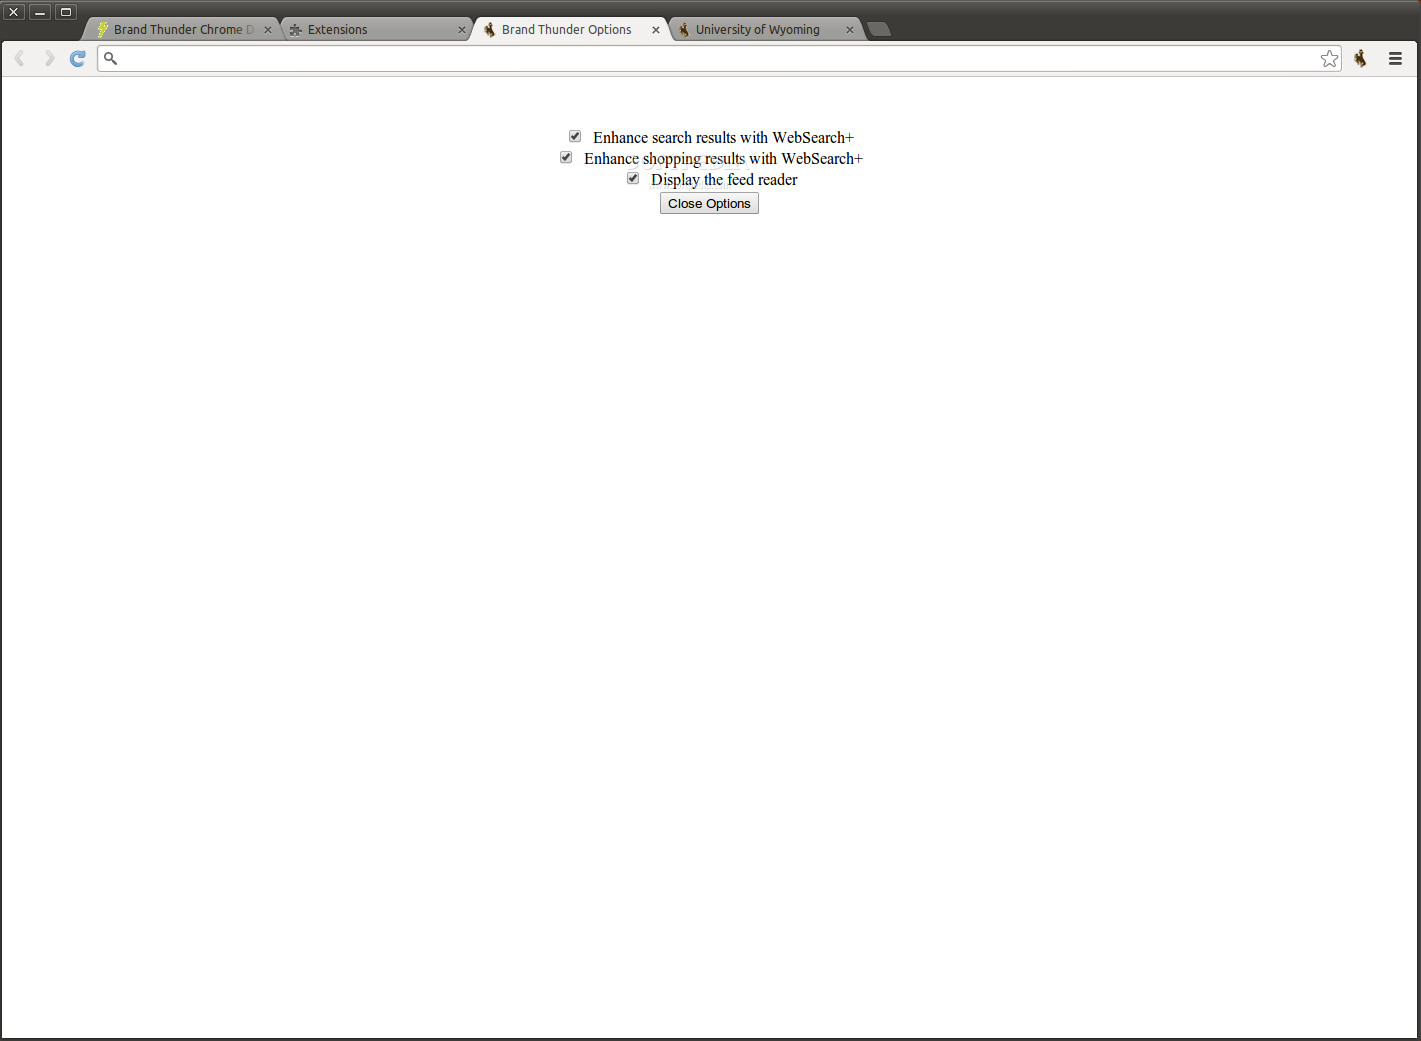 University of Wyoming for Google Chrome screenshot 2